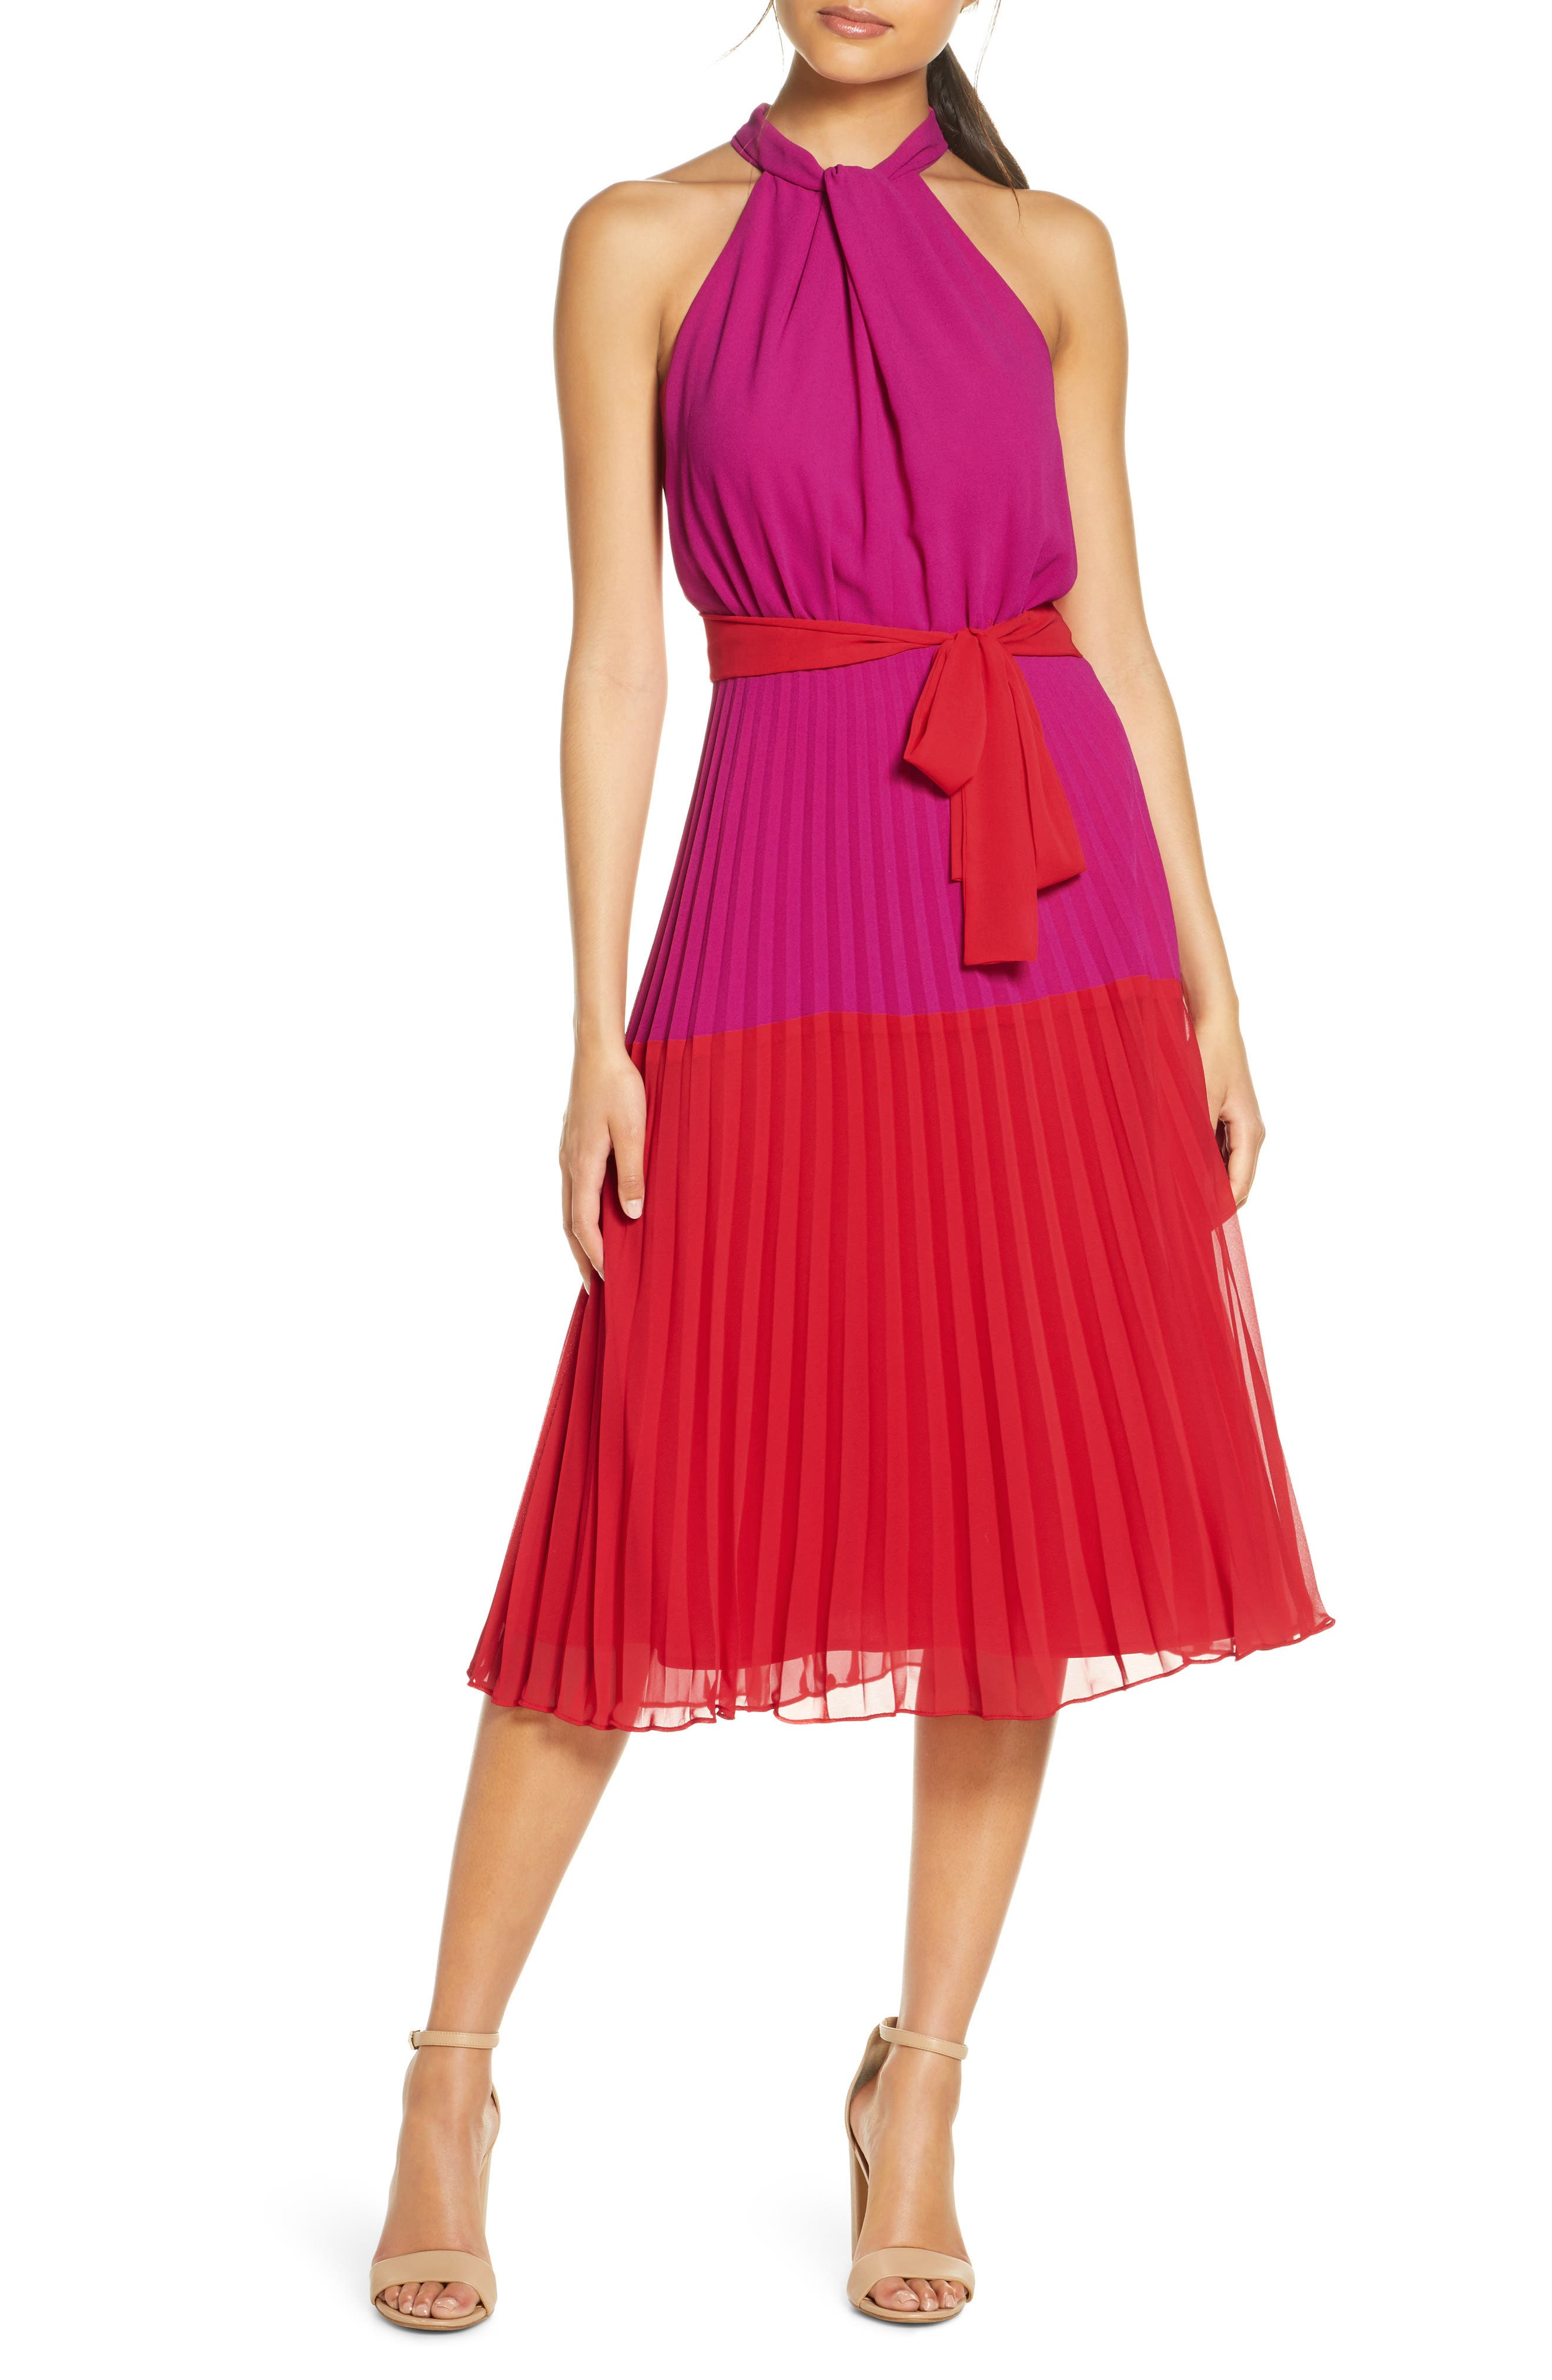 Two punchy colors and a swishy pleated skirt are all you need for a fun day out in this chiffon midi dress with twisted high neckline. Style Name: Julia Jordan Colorblock Pleated Halter Midi Dress. Style Number: 6021949. Available in stores.